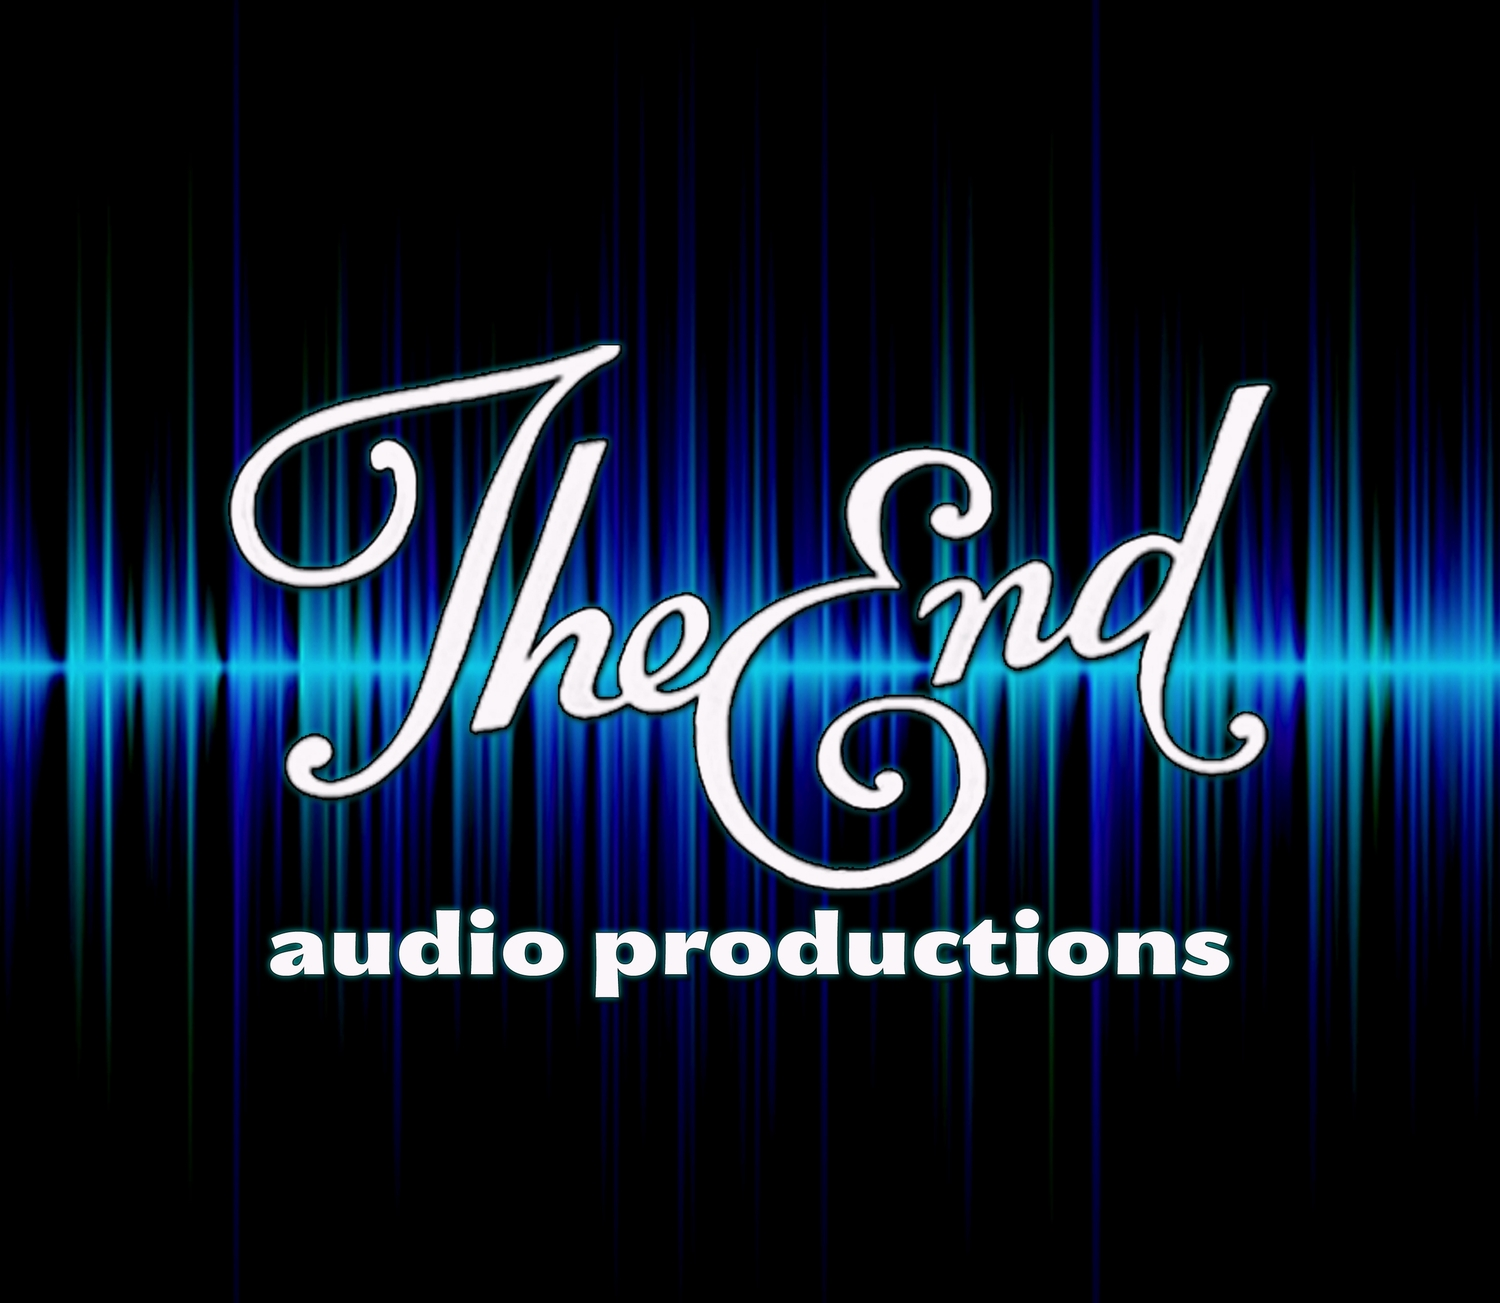 THE END AUDIO PRODUCTIONS